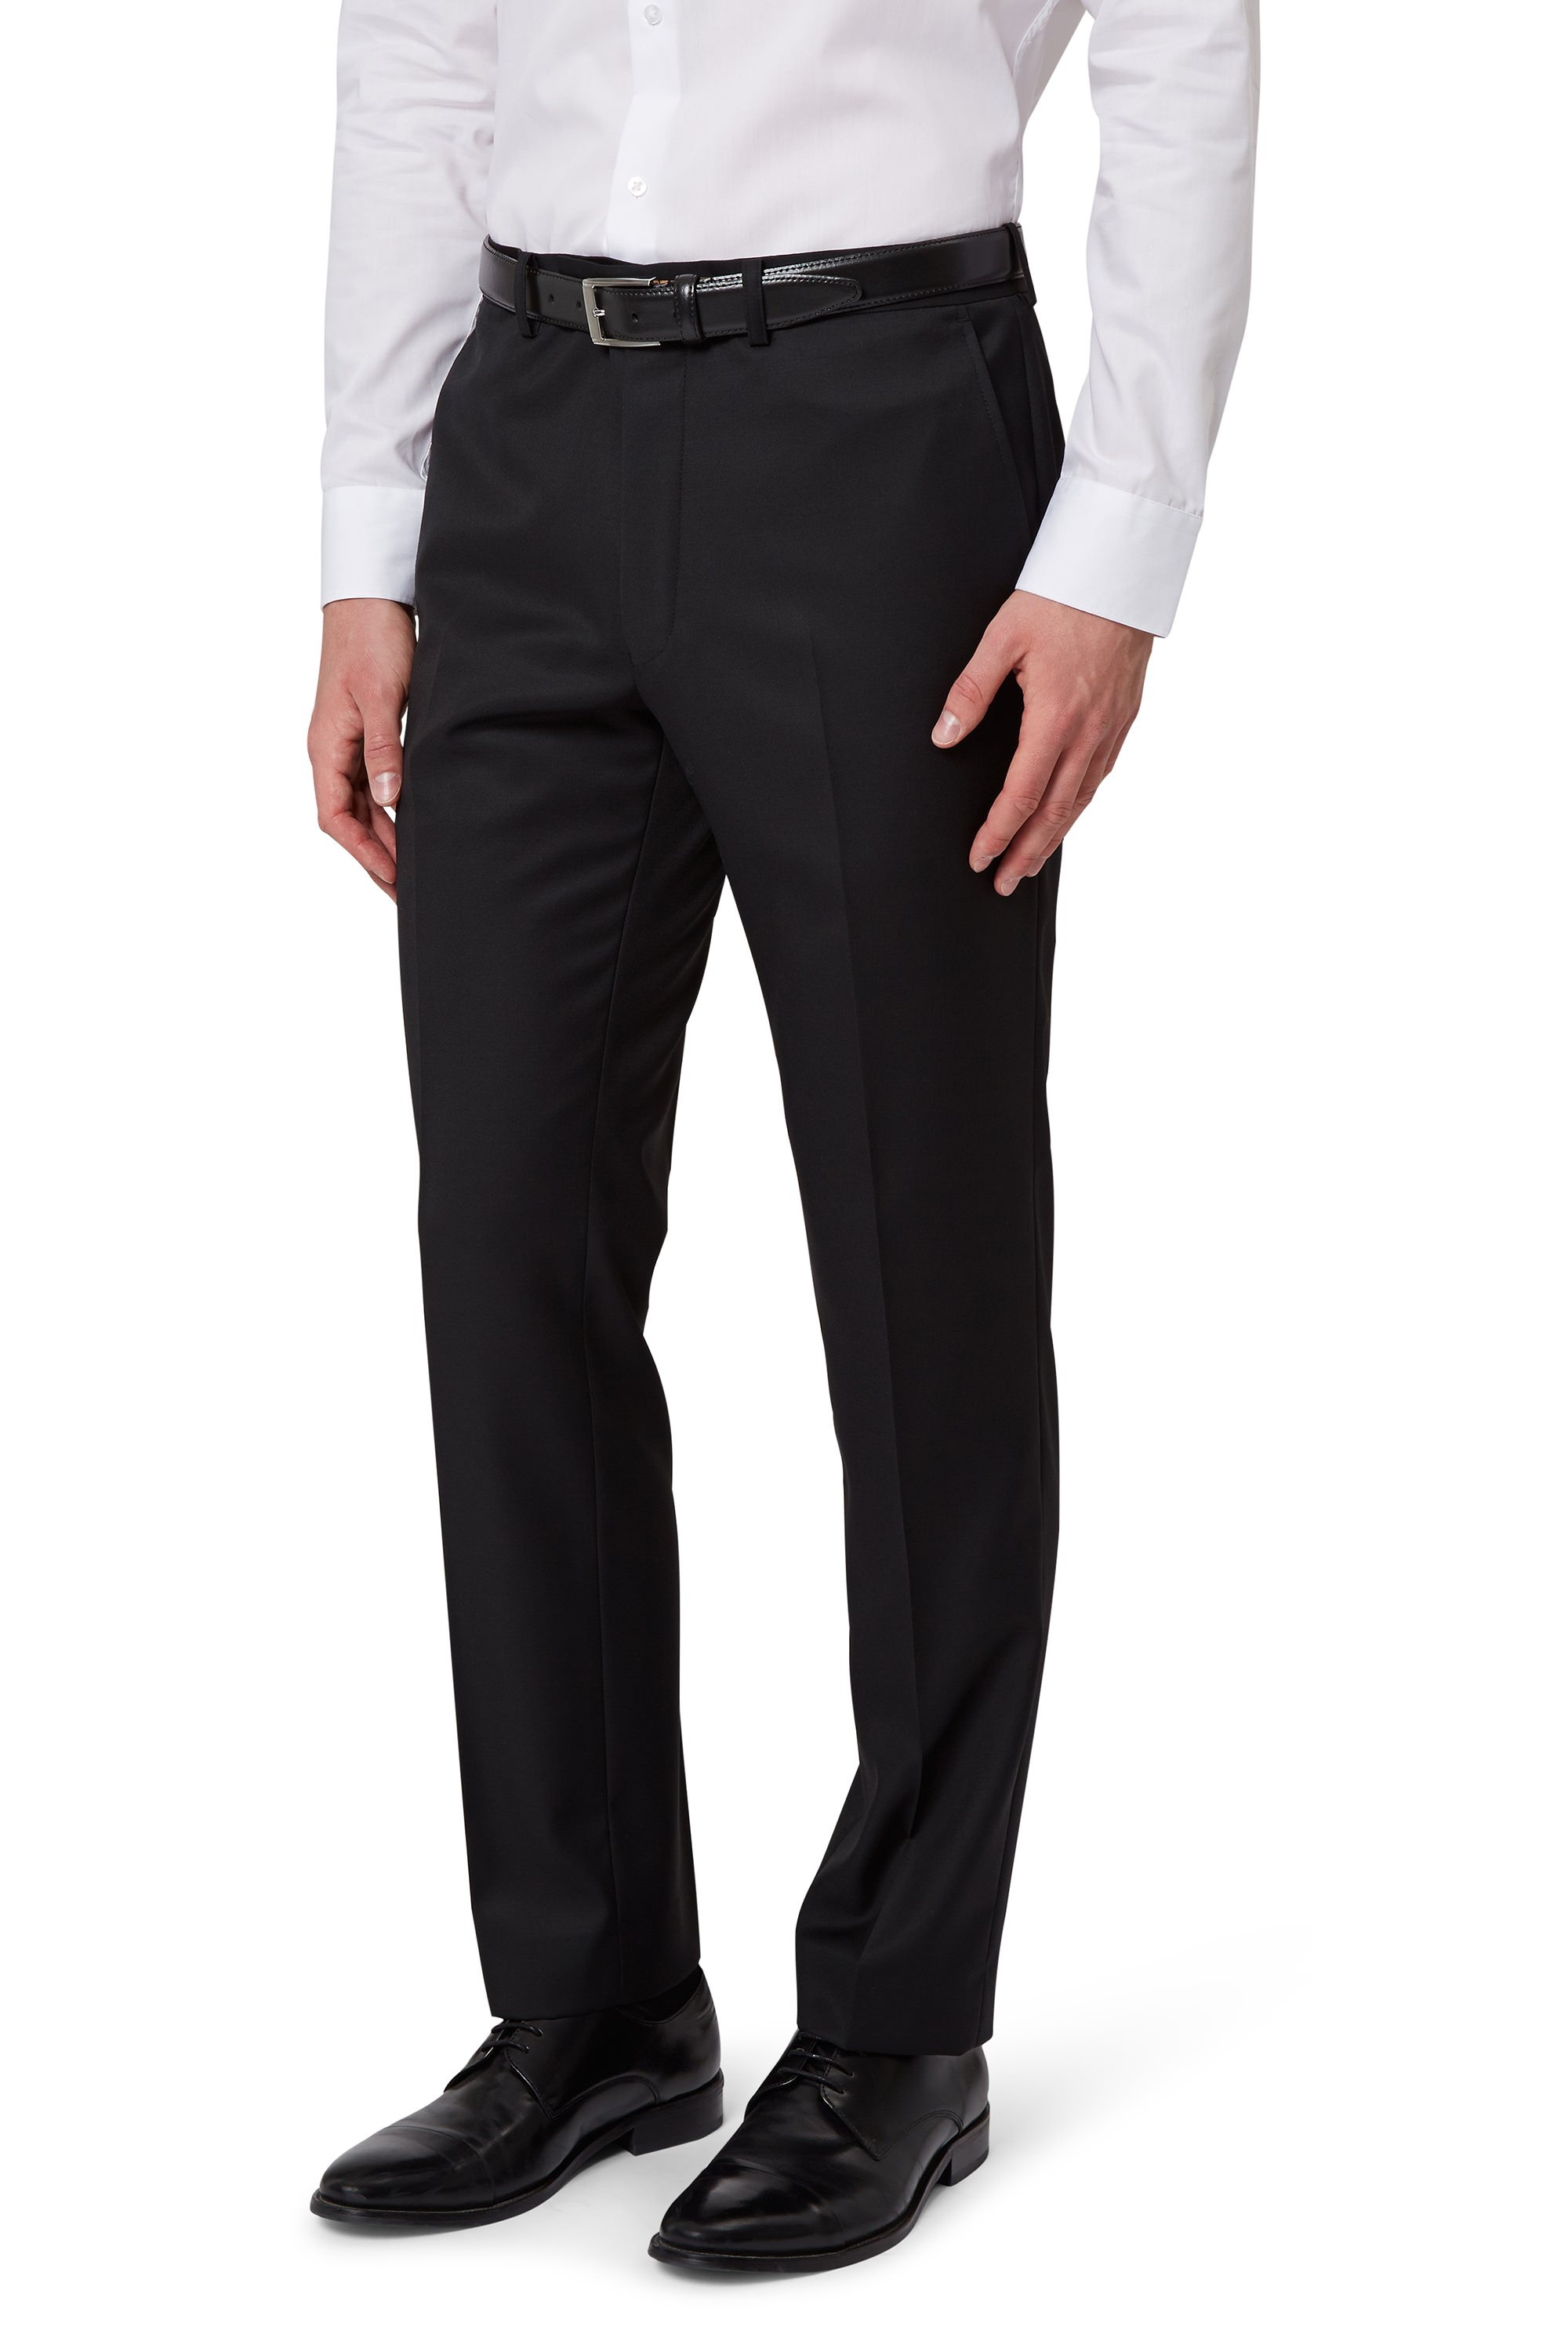 French Connection Black Tuxedo Trousers Slim Fit Flat Front Suit ...